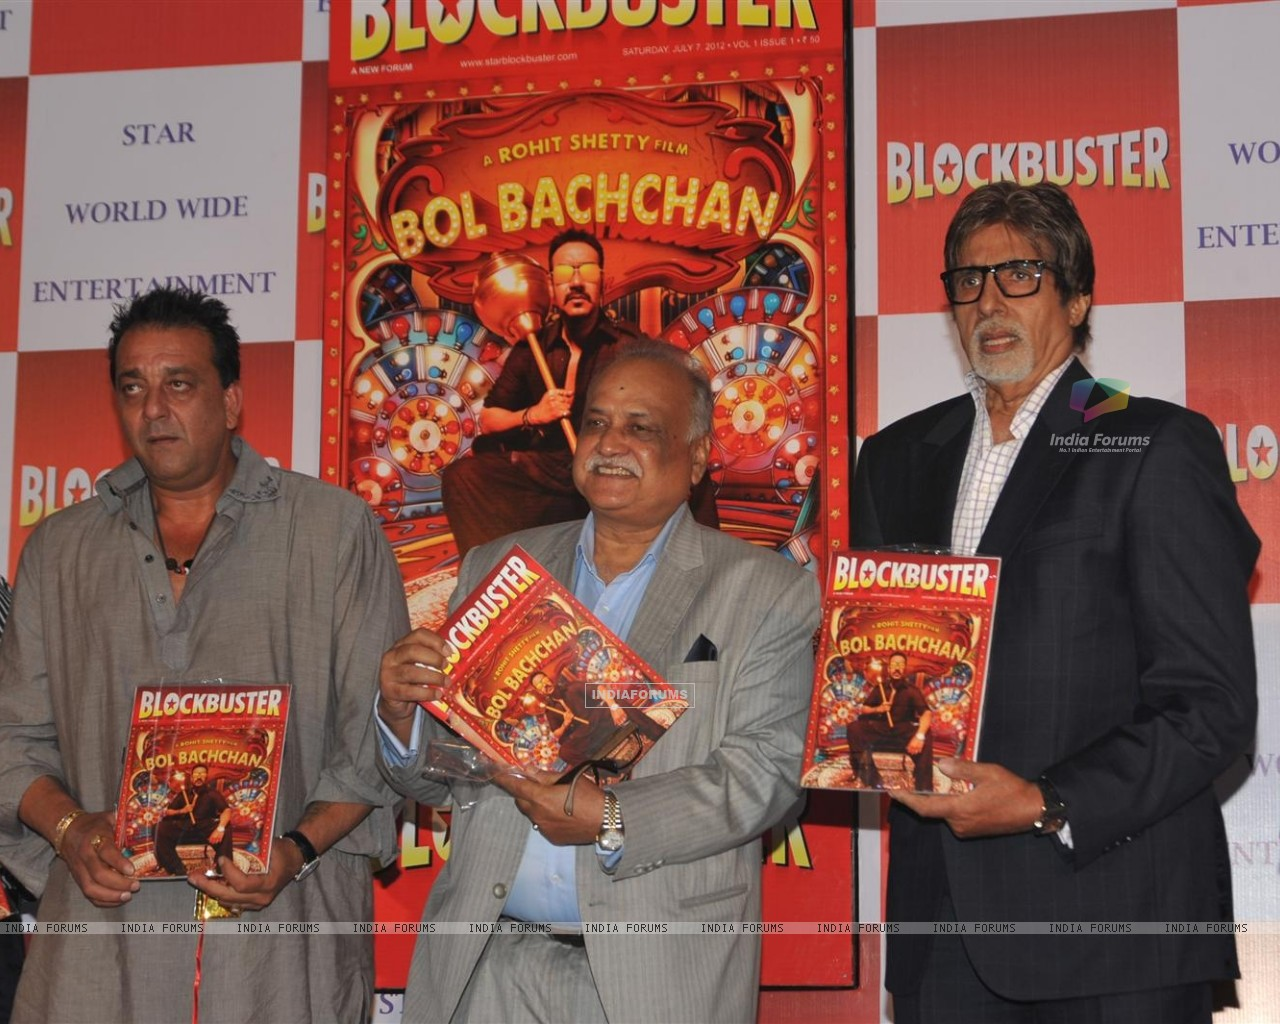 Sanjay Dutt, TP Agarwal & Amitabh Bachchan at Launch of T P Aggarwal's trade magazine 'Blockbuster' (211813) size:1280x1024